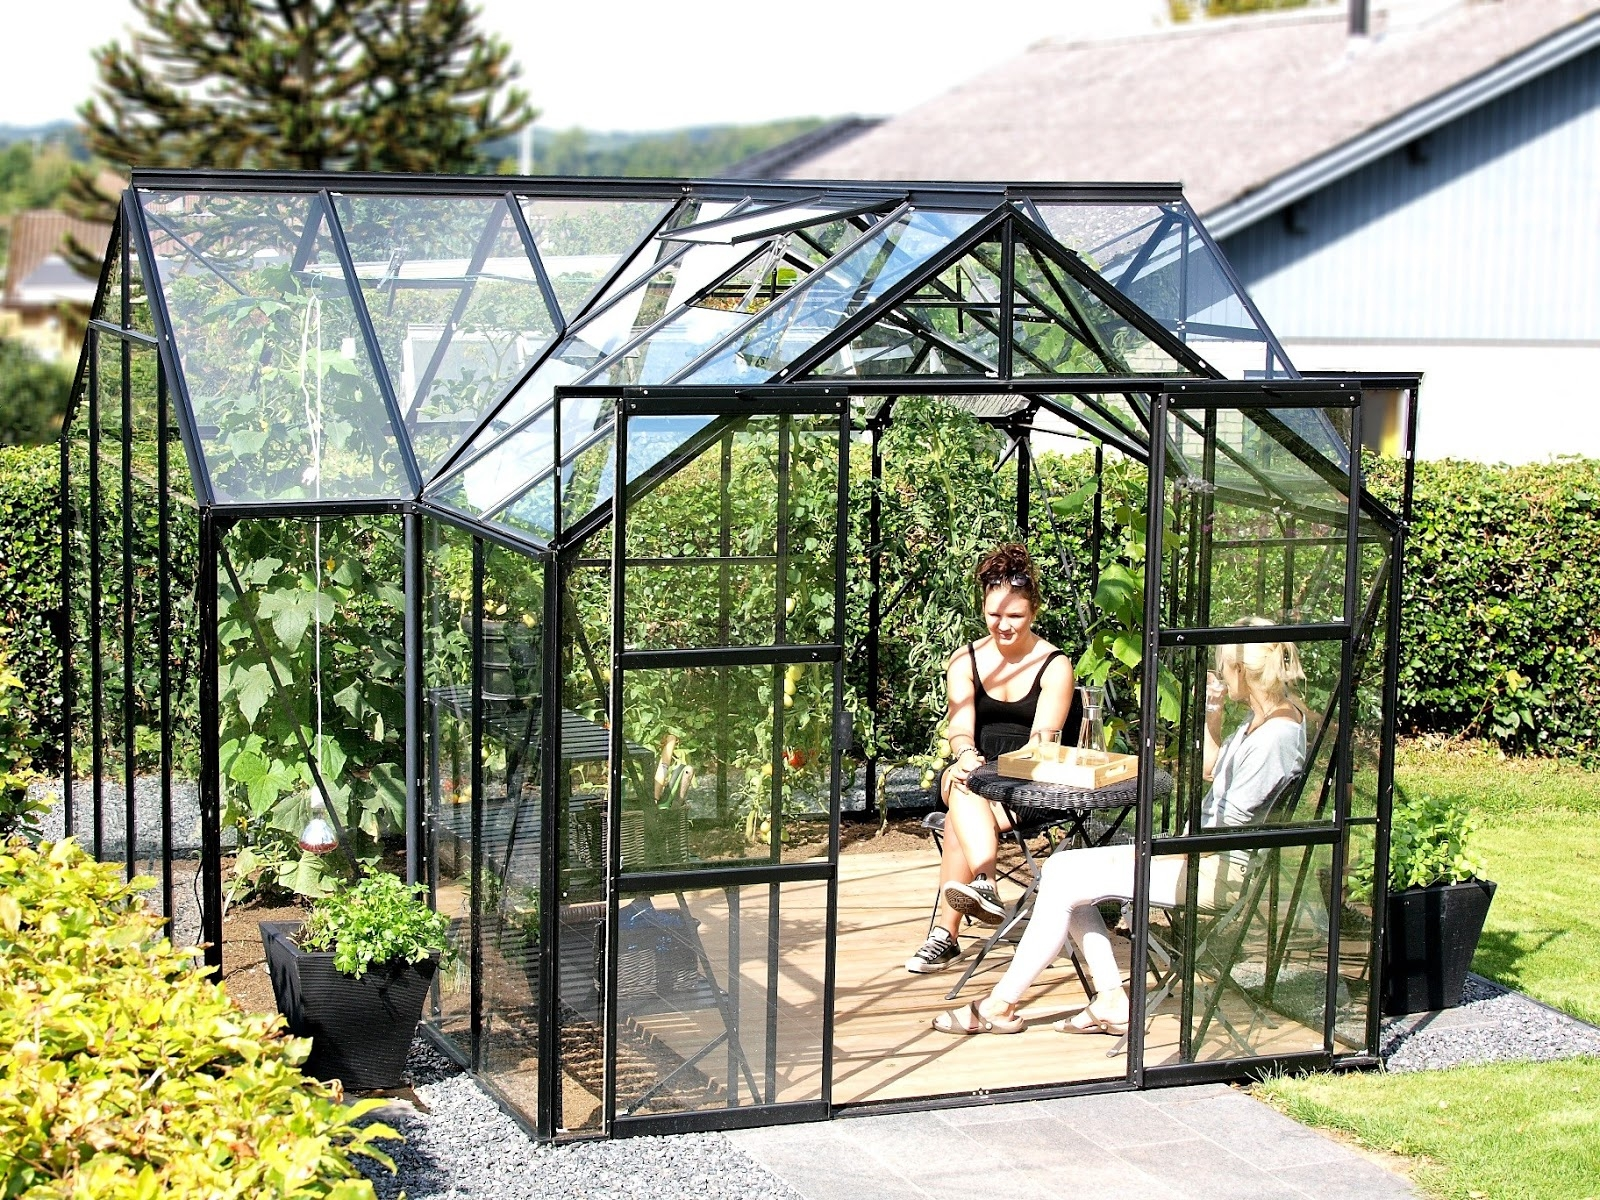 People sit in greenhouse